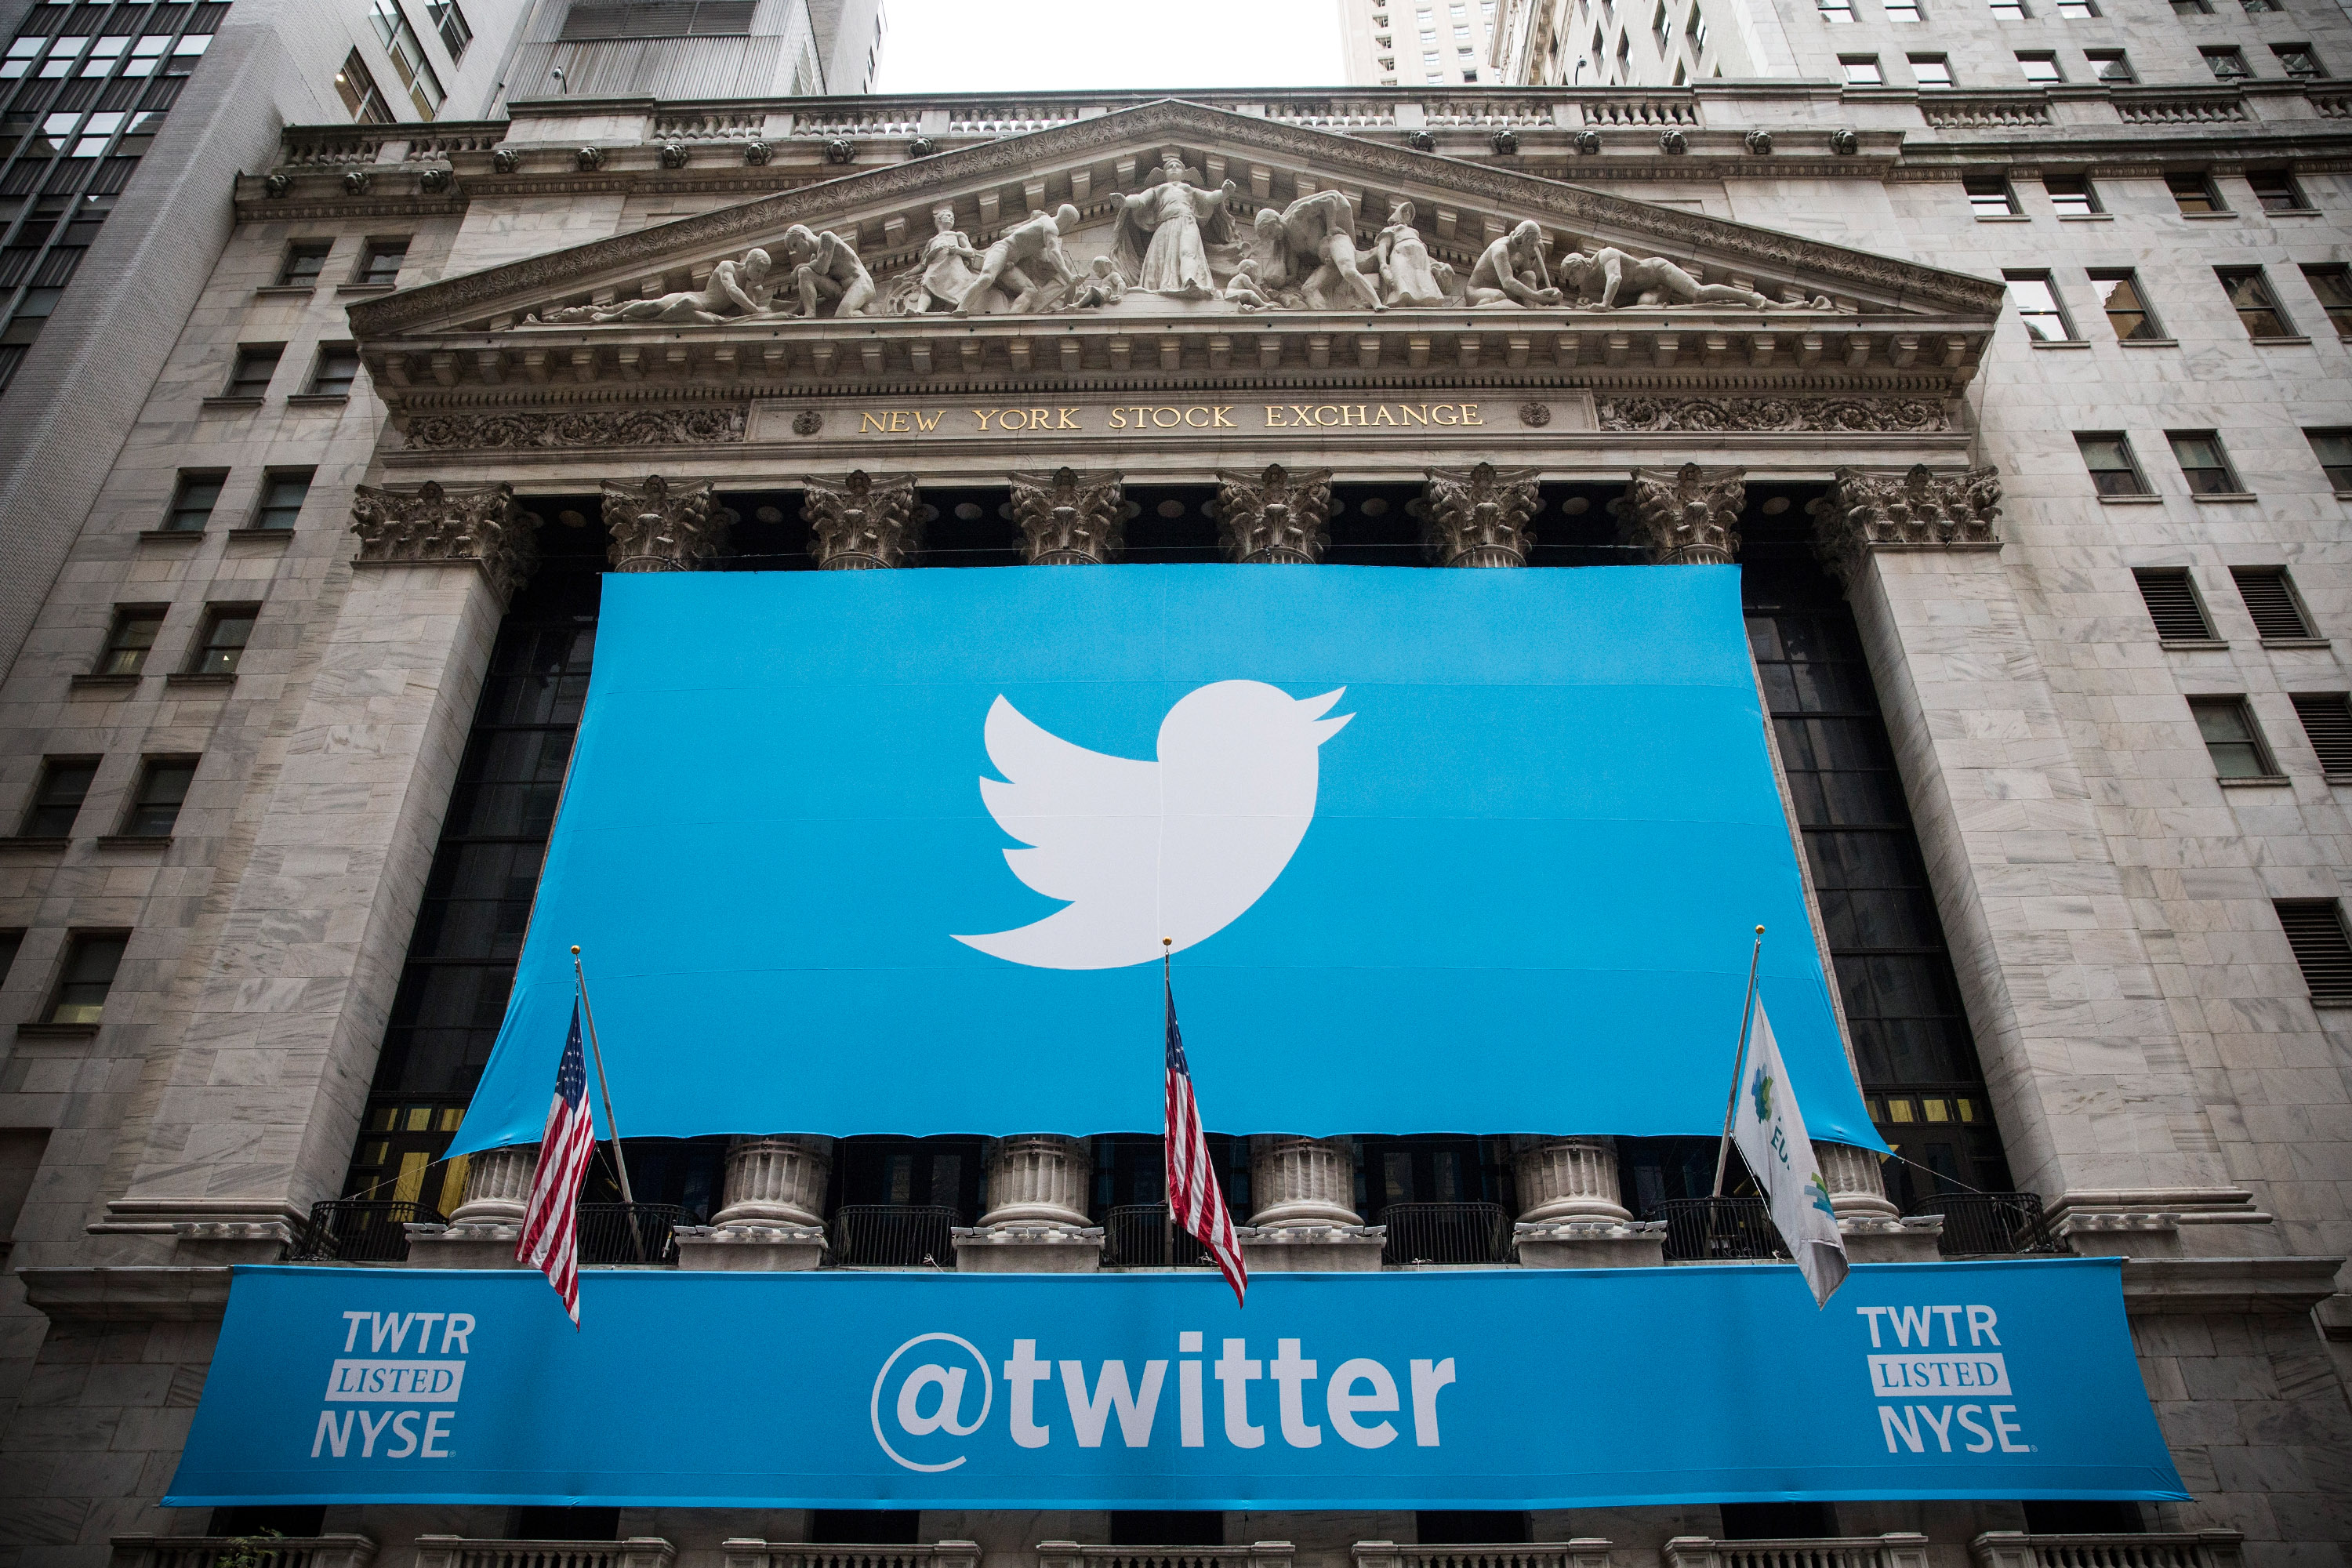 Twitter's logo displayed outside the New York Stock Exchange on the day of its IPO in 2013.